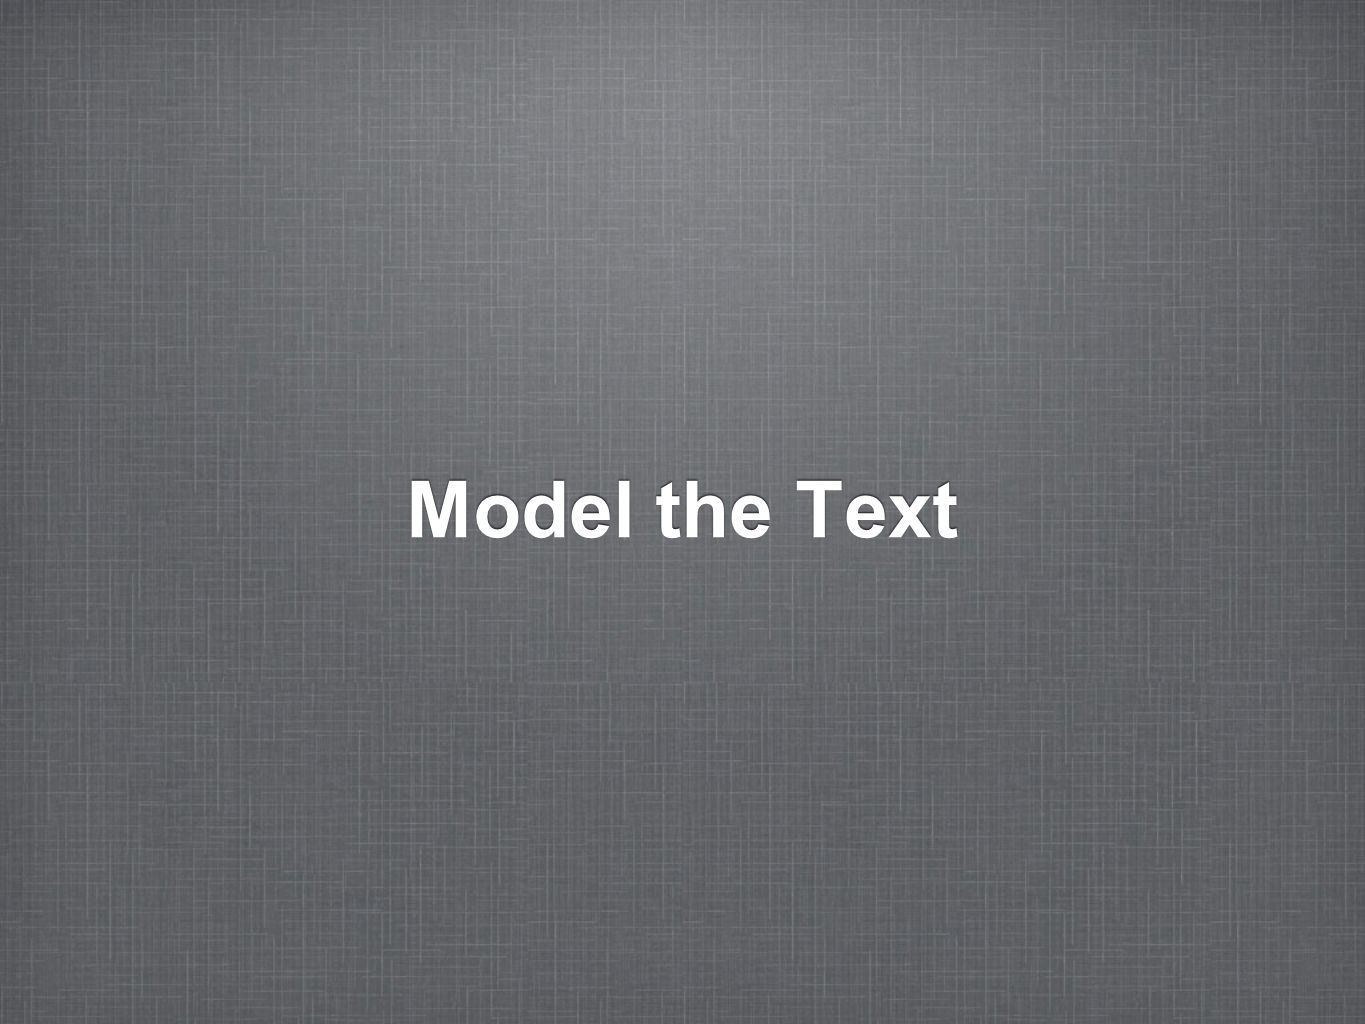 Model the Text